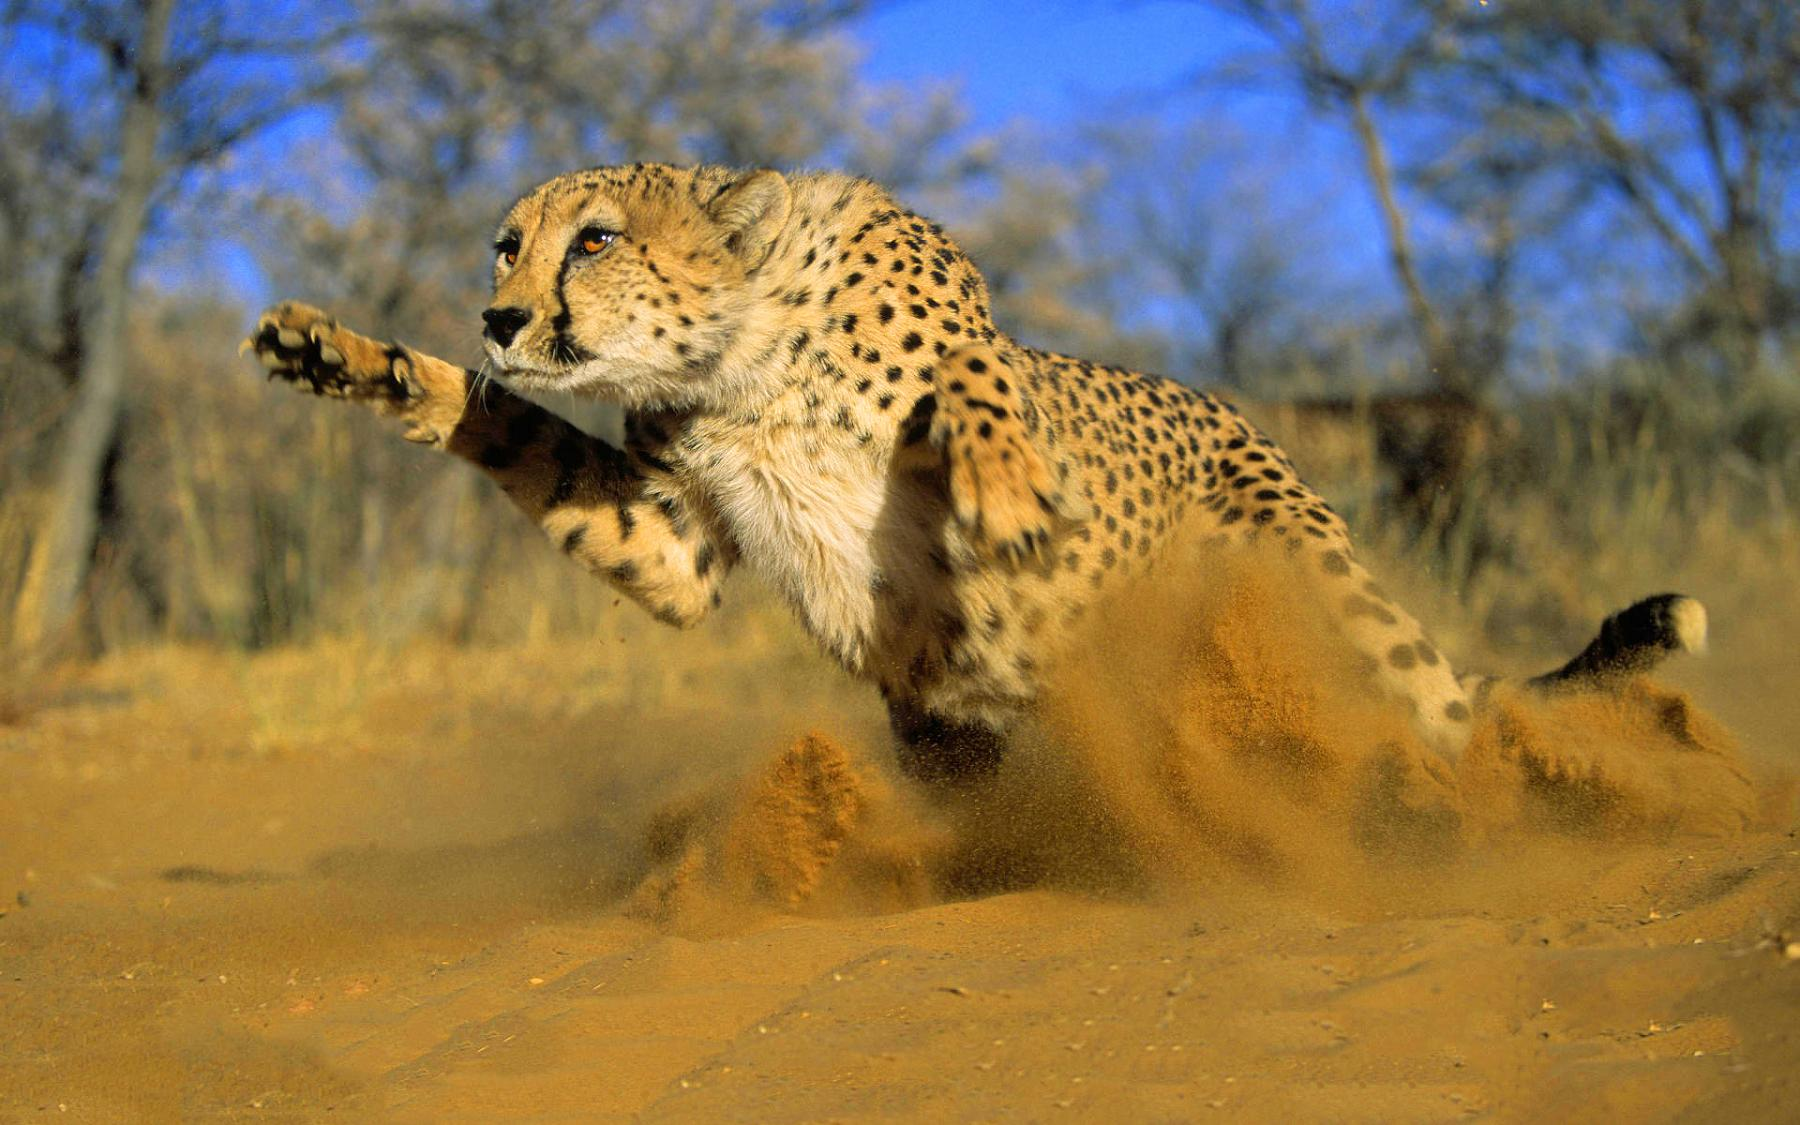 1419001865_cheetah-running-sand.jpg